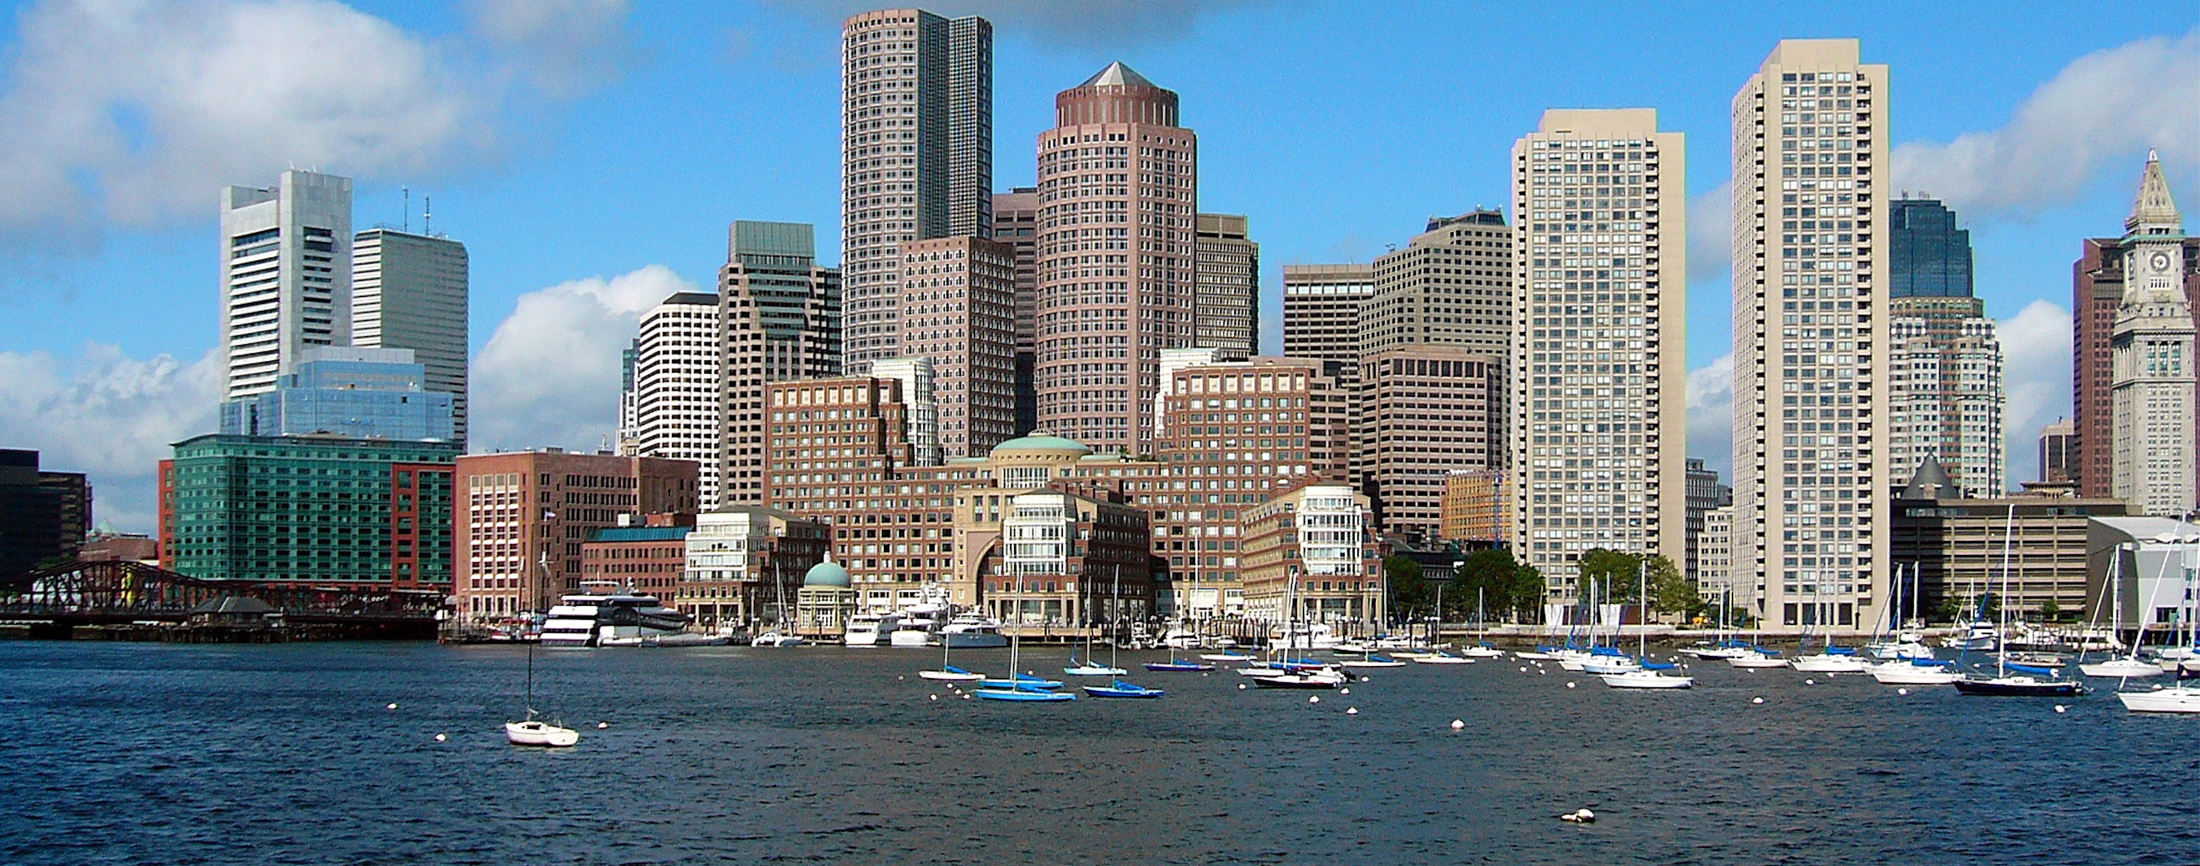 Boston is Reasserting its Healthcare Leadership Position